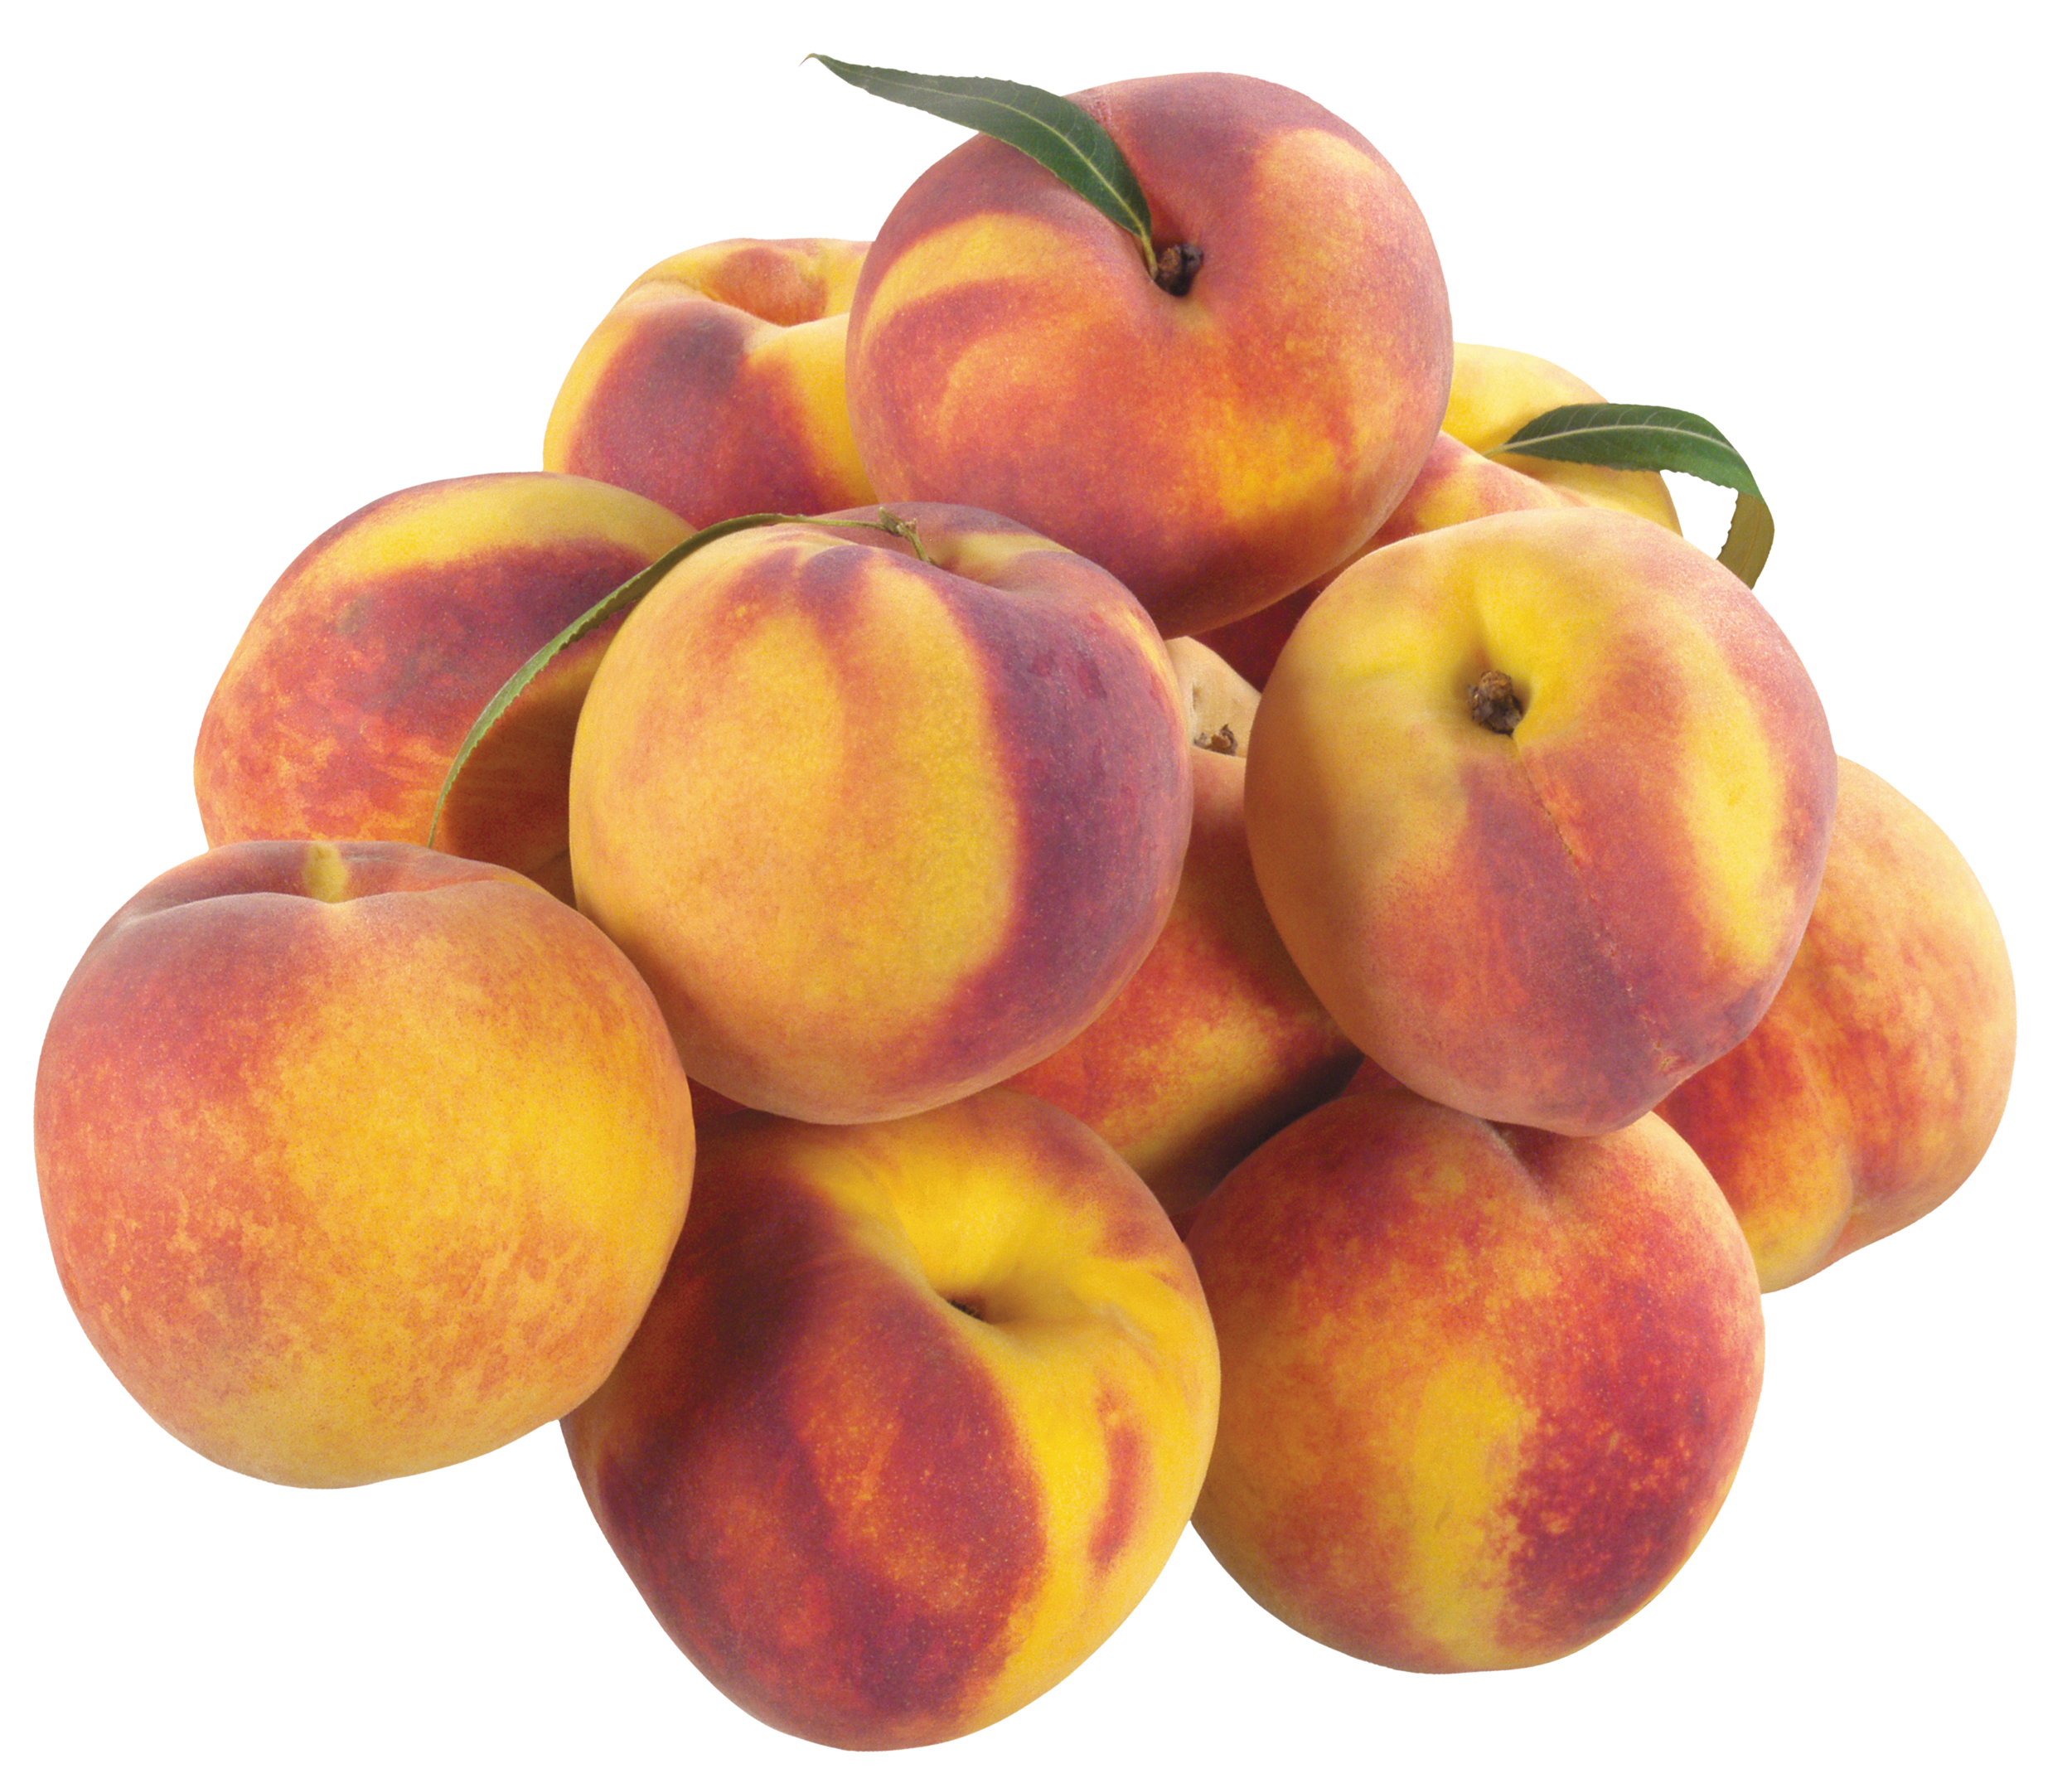 Peaches clipart basket peach. Pile of png best